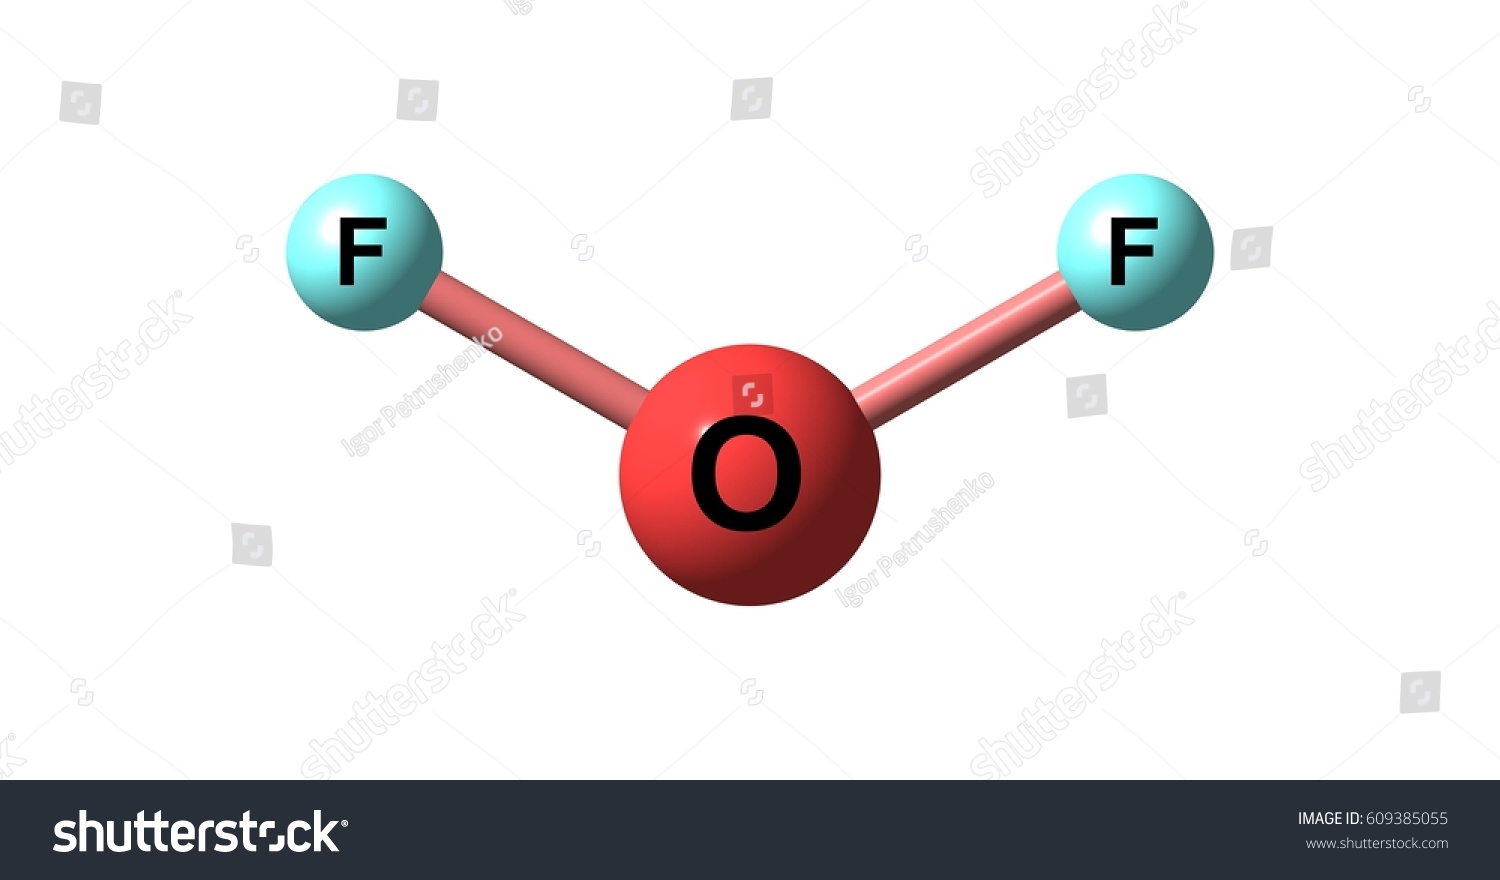 Oxygen difluoride chemical compound formula of2 stock illustration oxygen difluoride is the chemical compound with the formula of2 it is a strong oxidizer buycottarizona Image collections